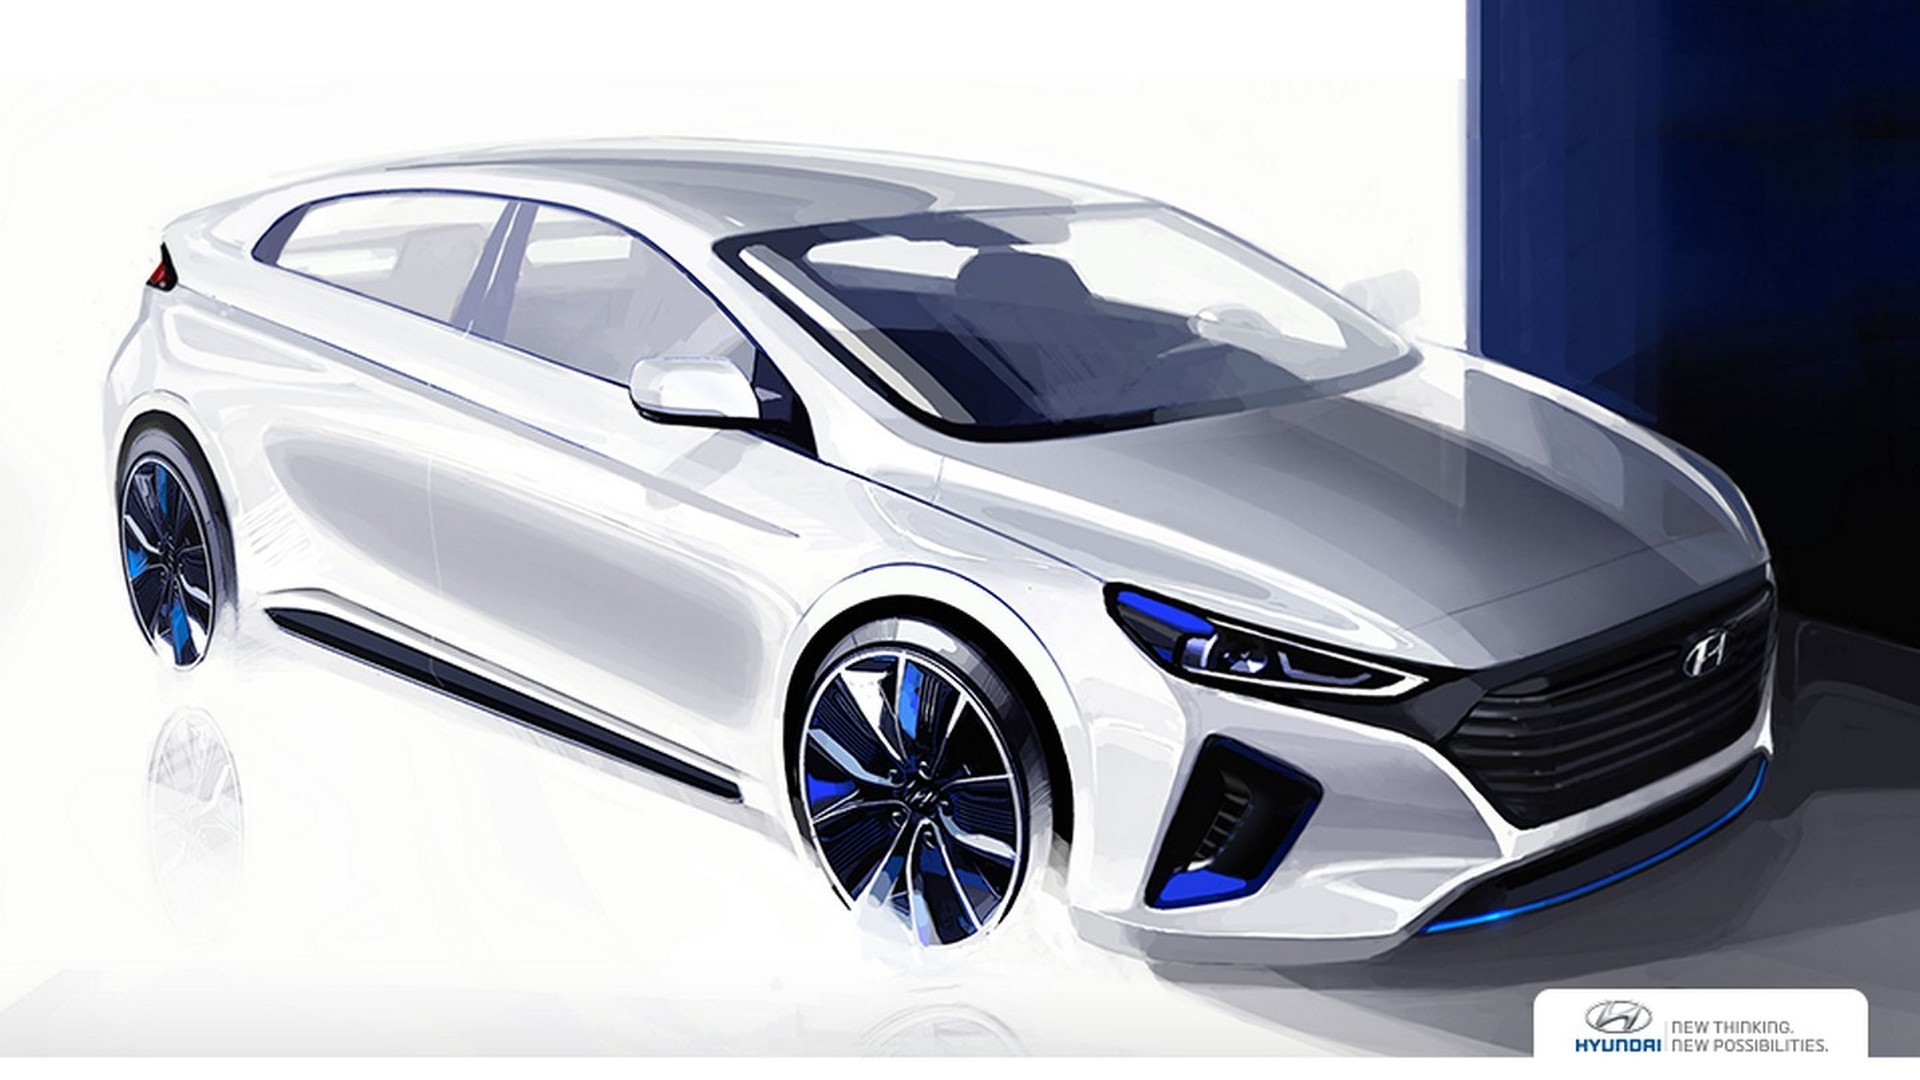 Hyundai keeps teasing IONIQ even though we've seen it already